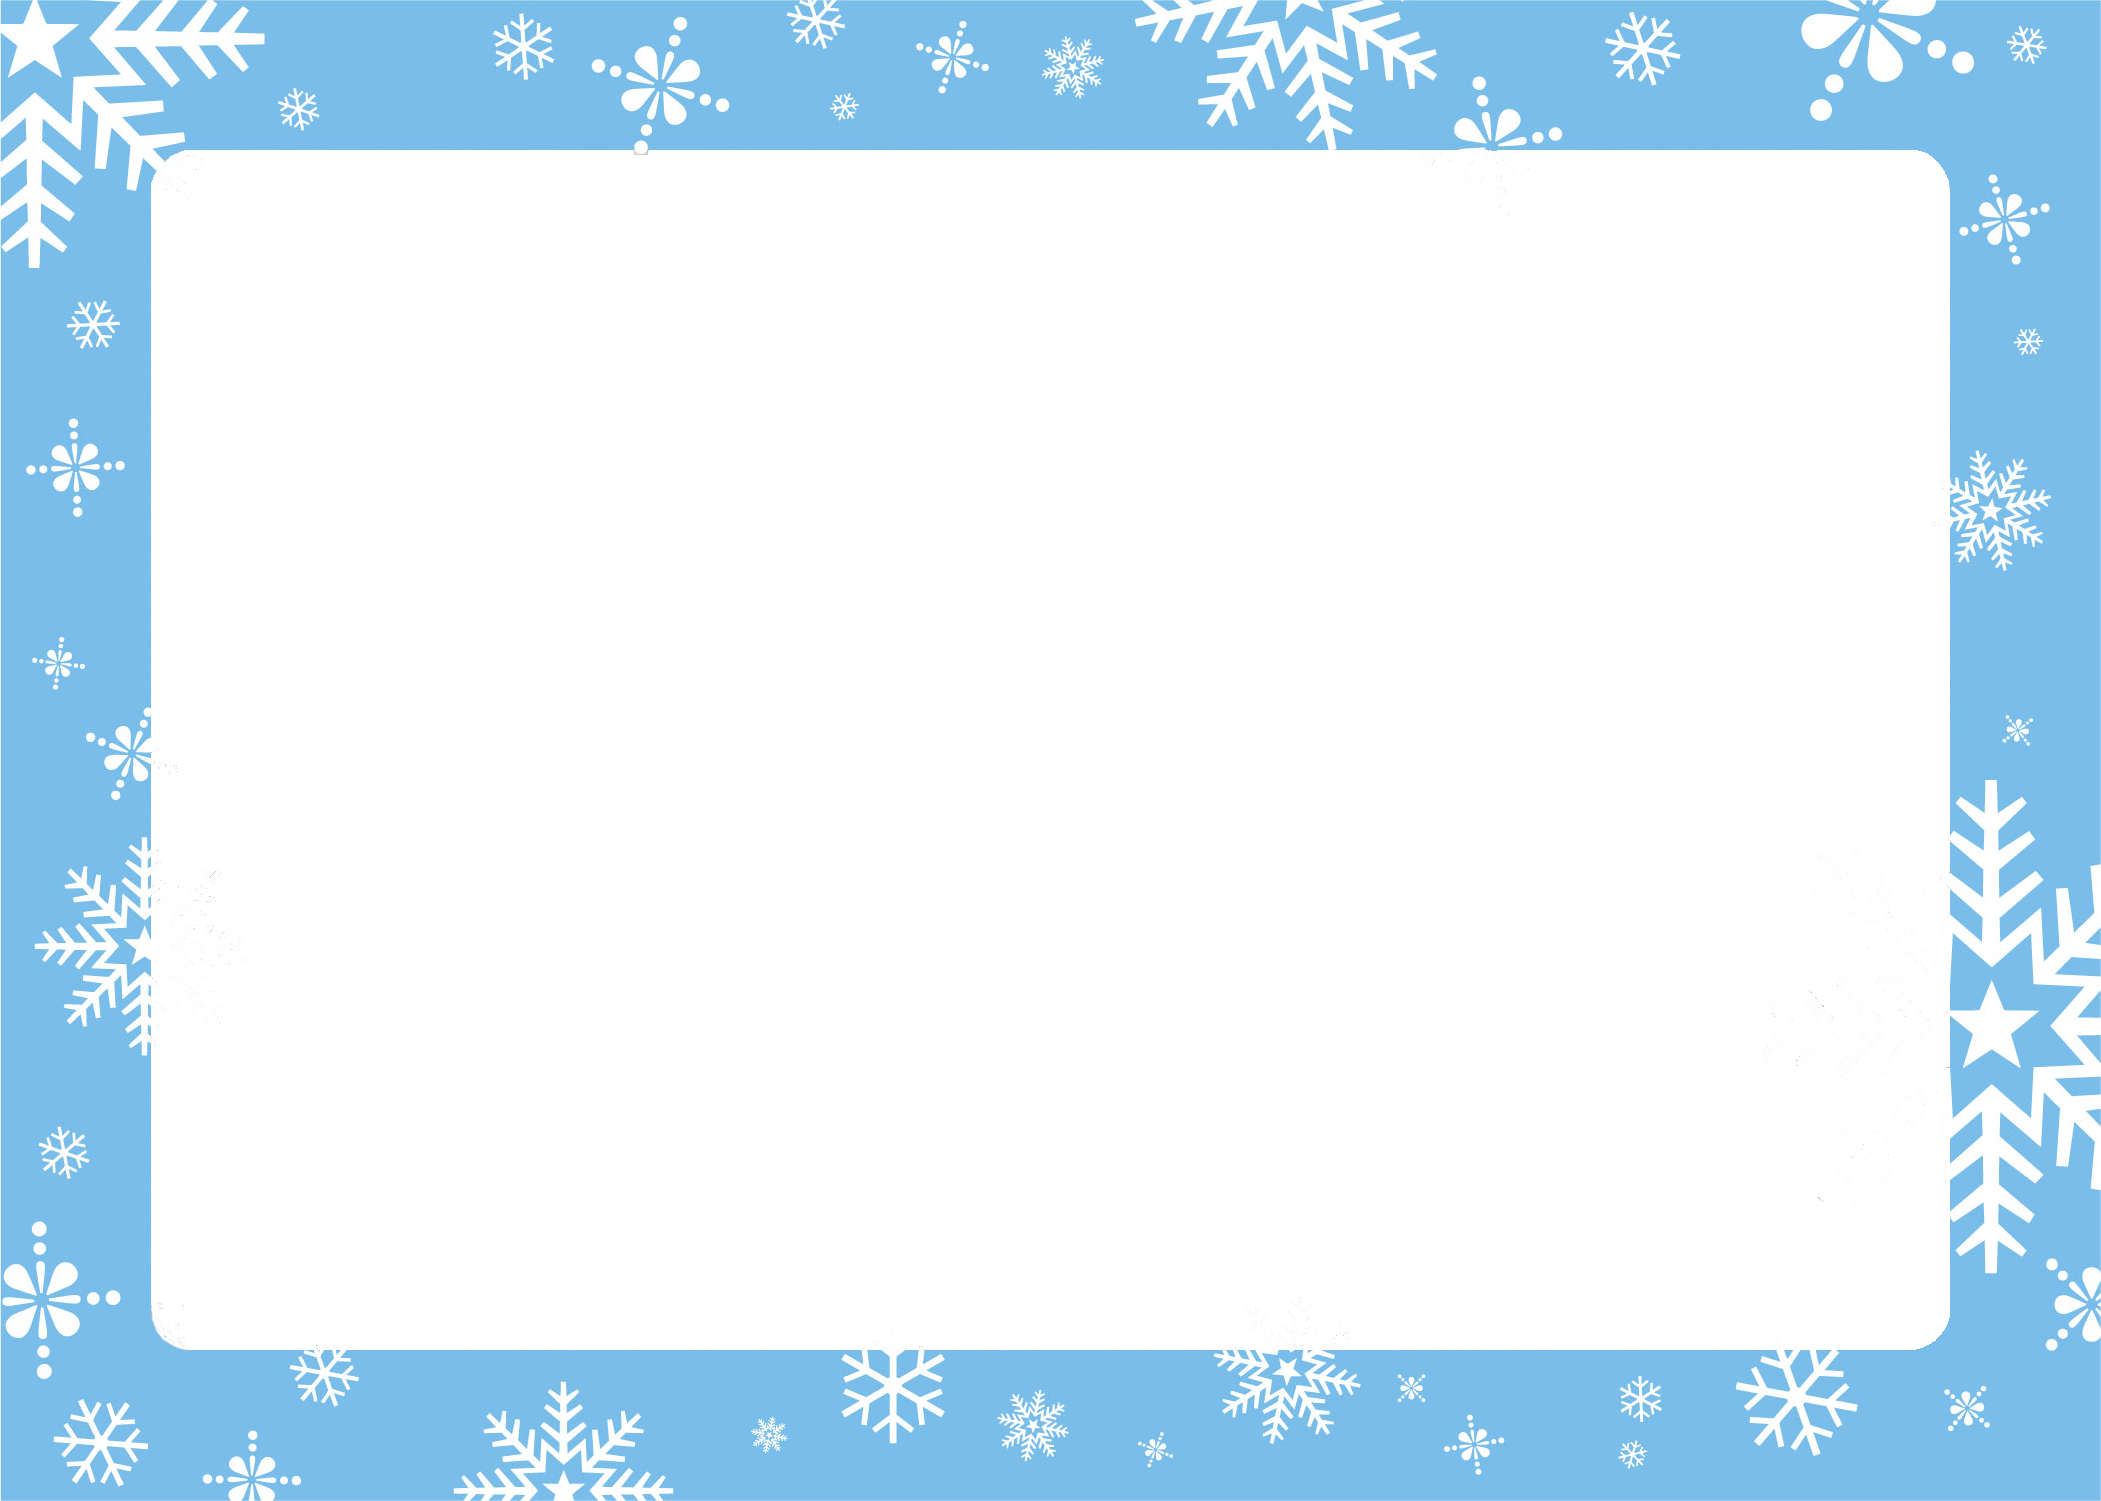 Free Christmas Picture Border Frames | Create Holiday Greeting Card ...